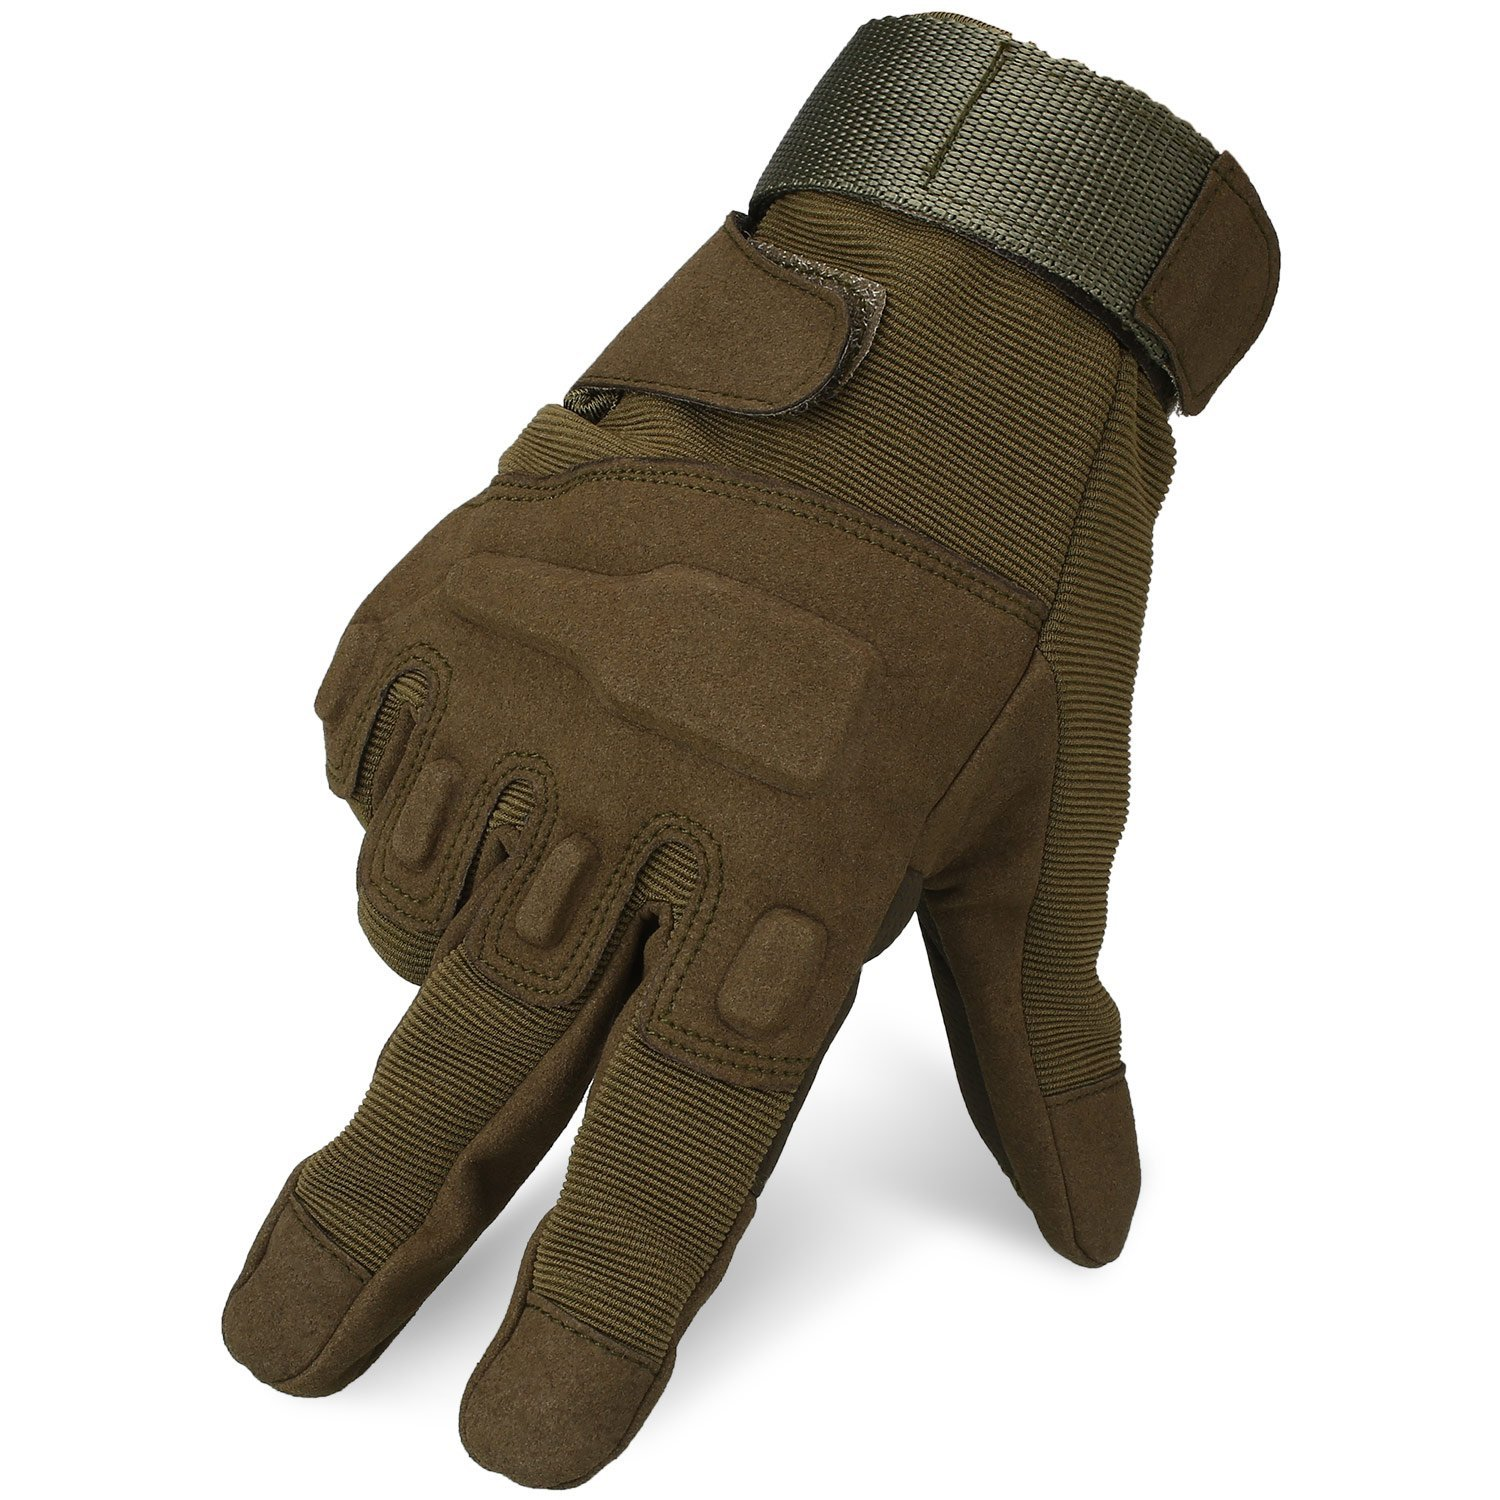 Cido Reinforced Tactical Gloves Outdoor/Fahrrad/Shooting/Driving with Adjustable Velcro (Amy Green(XL))